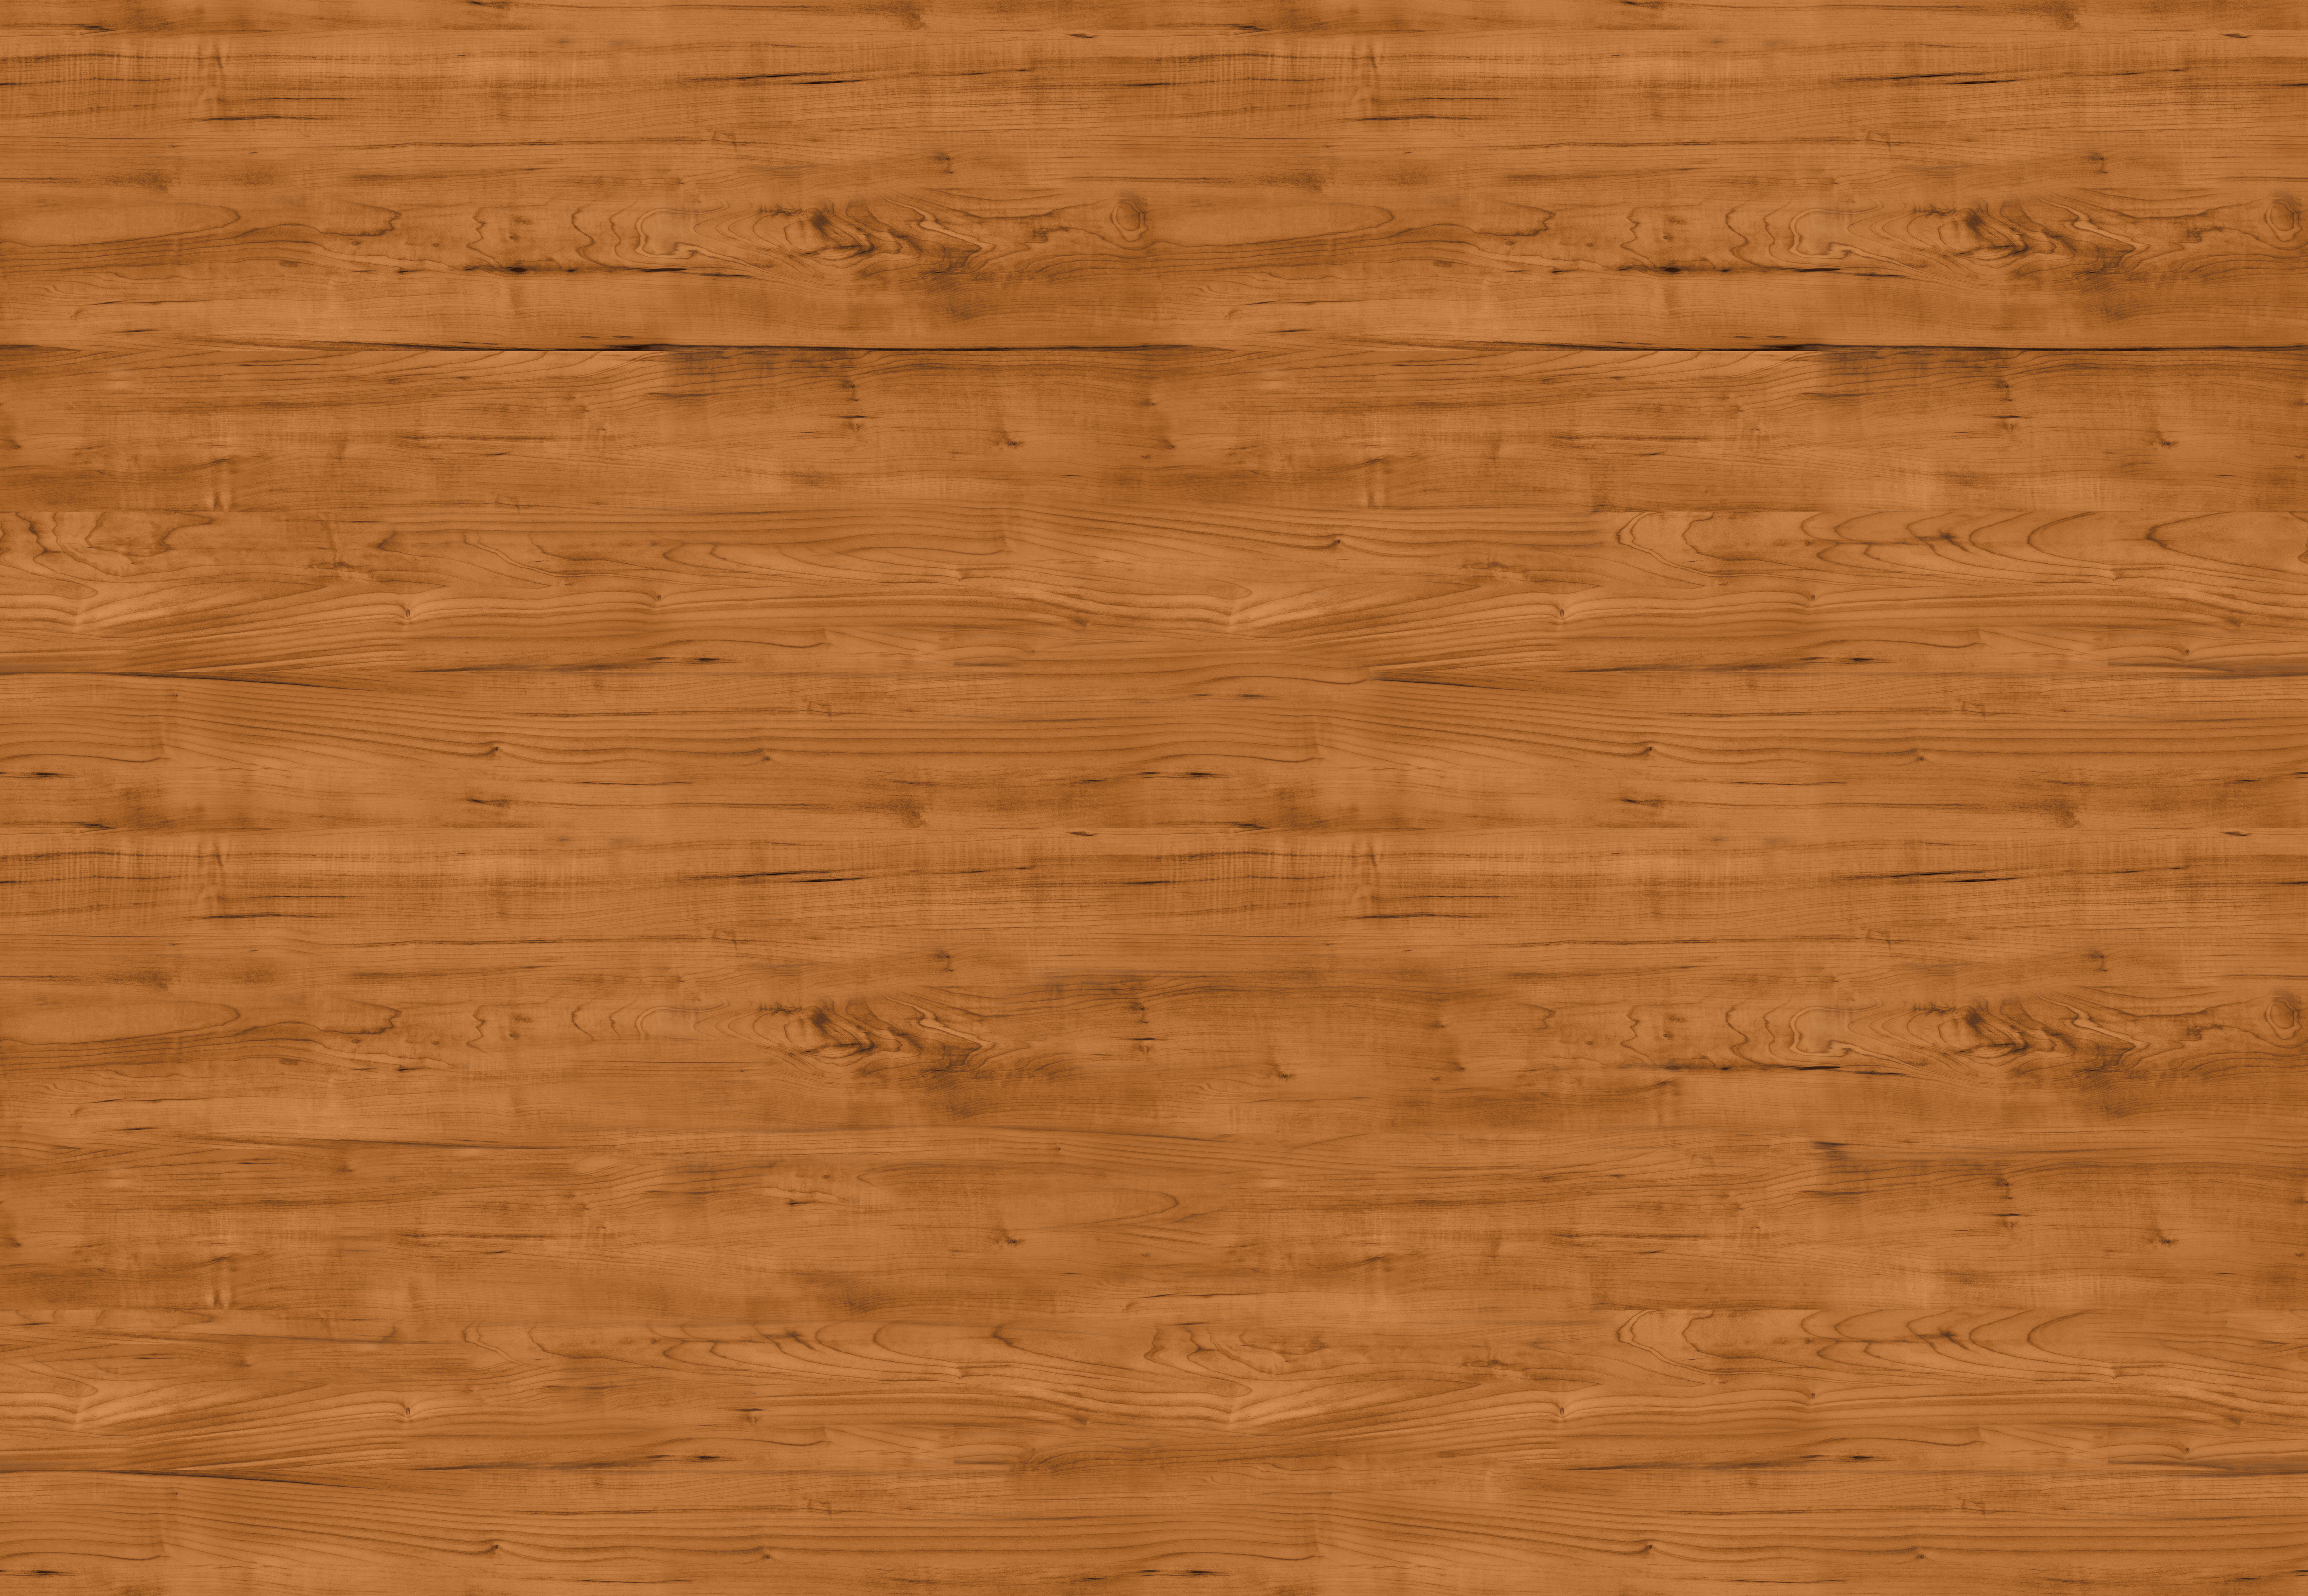 Tileable wood table texture -